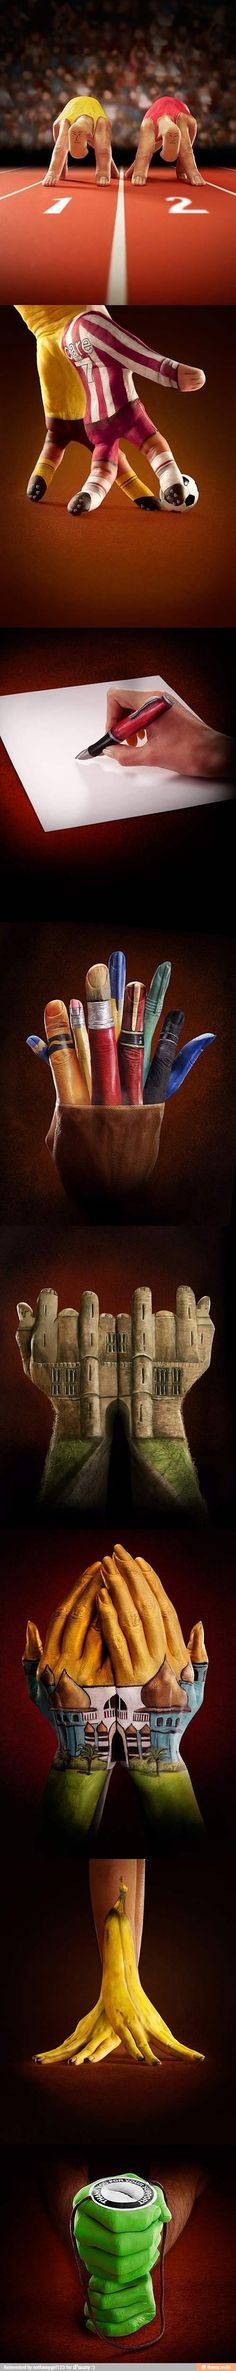 Really cool painted hands